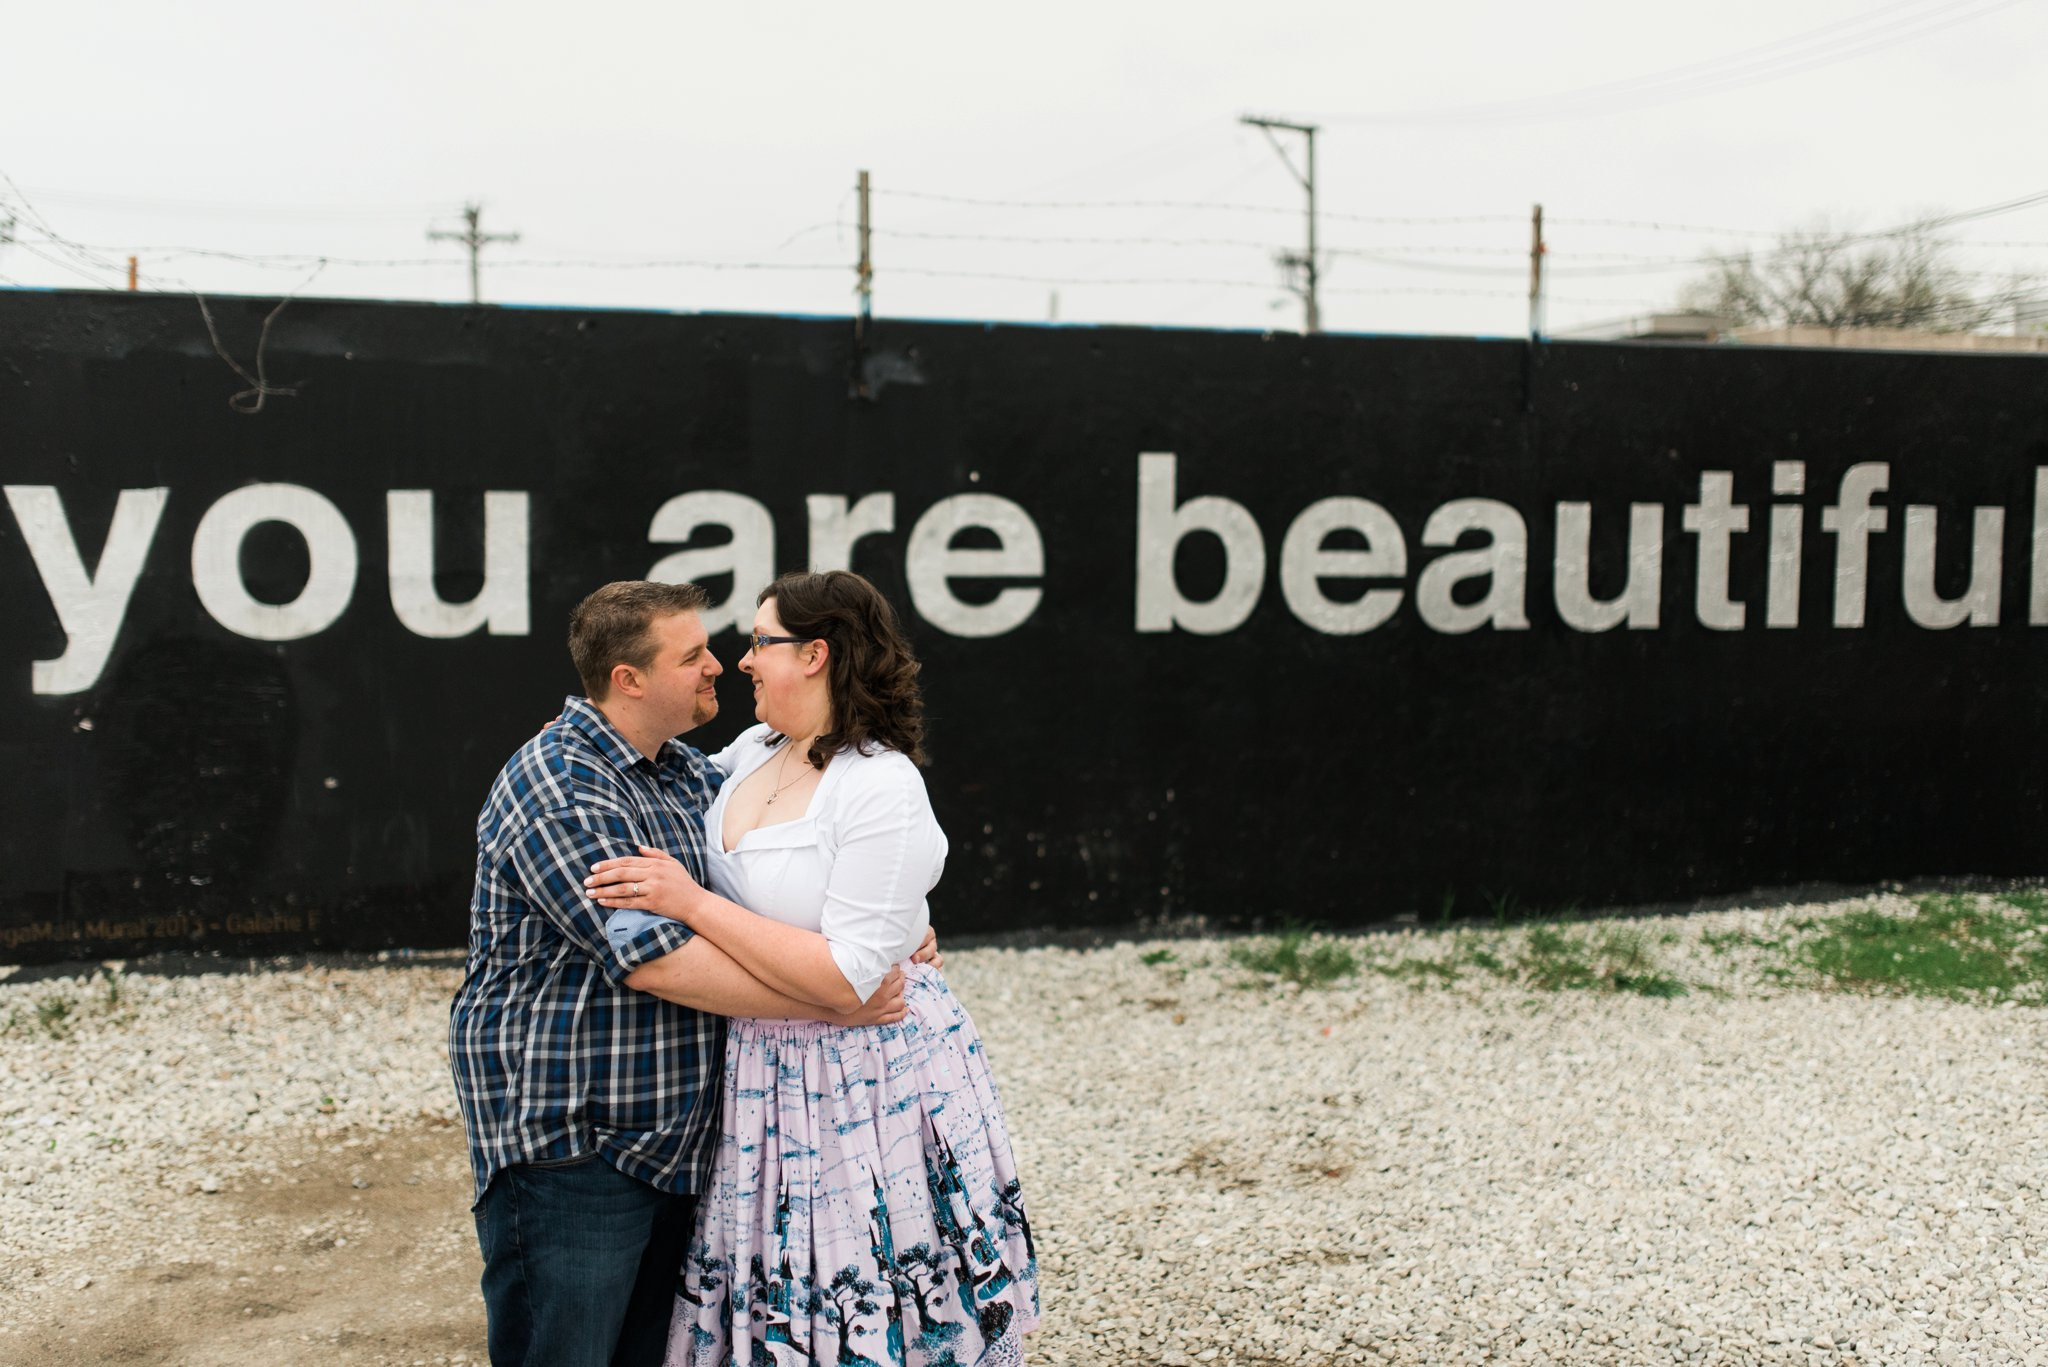 Logan-Square-Engagement-Photography-117.jpg